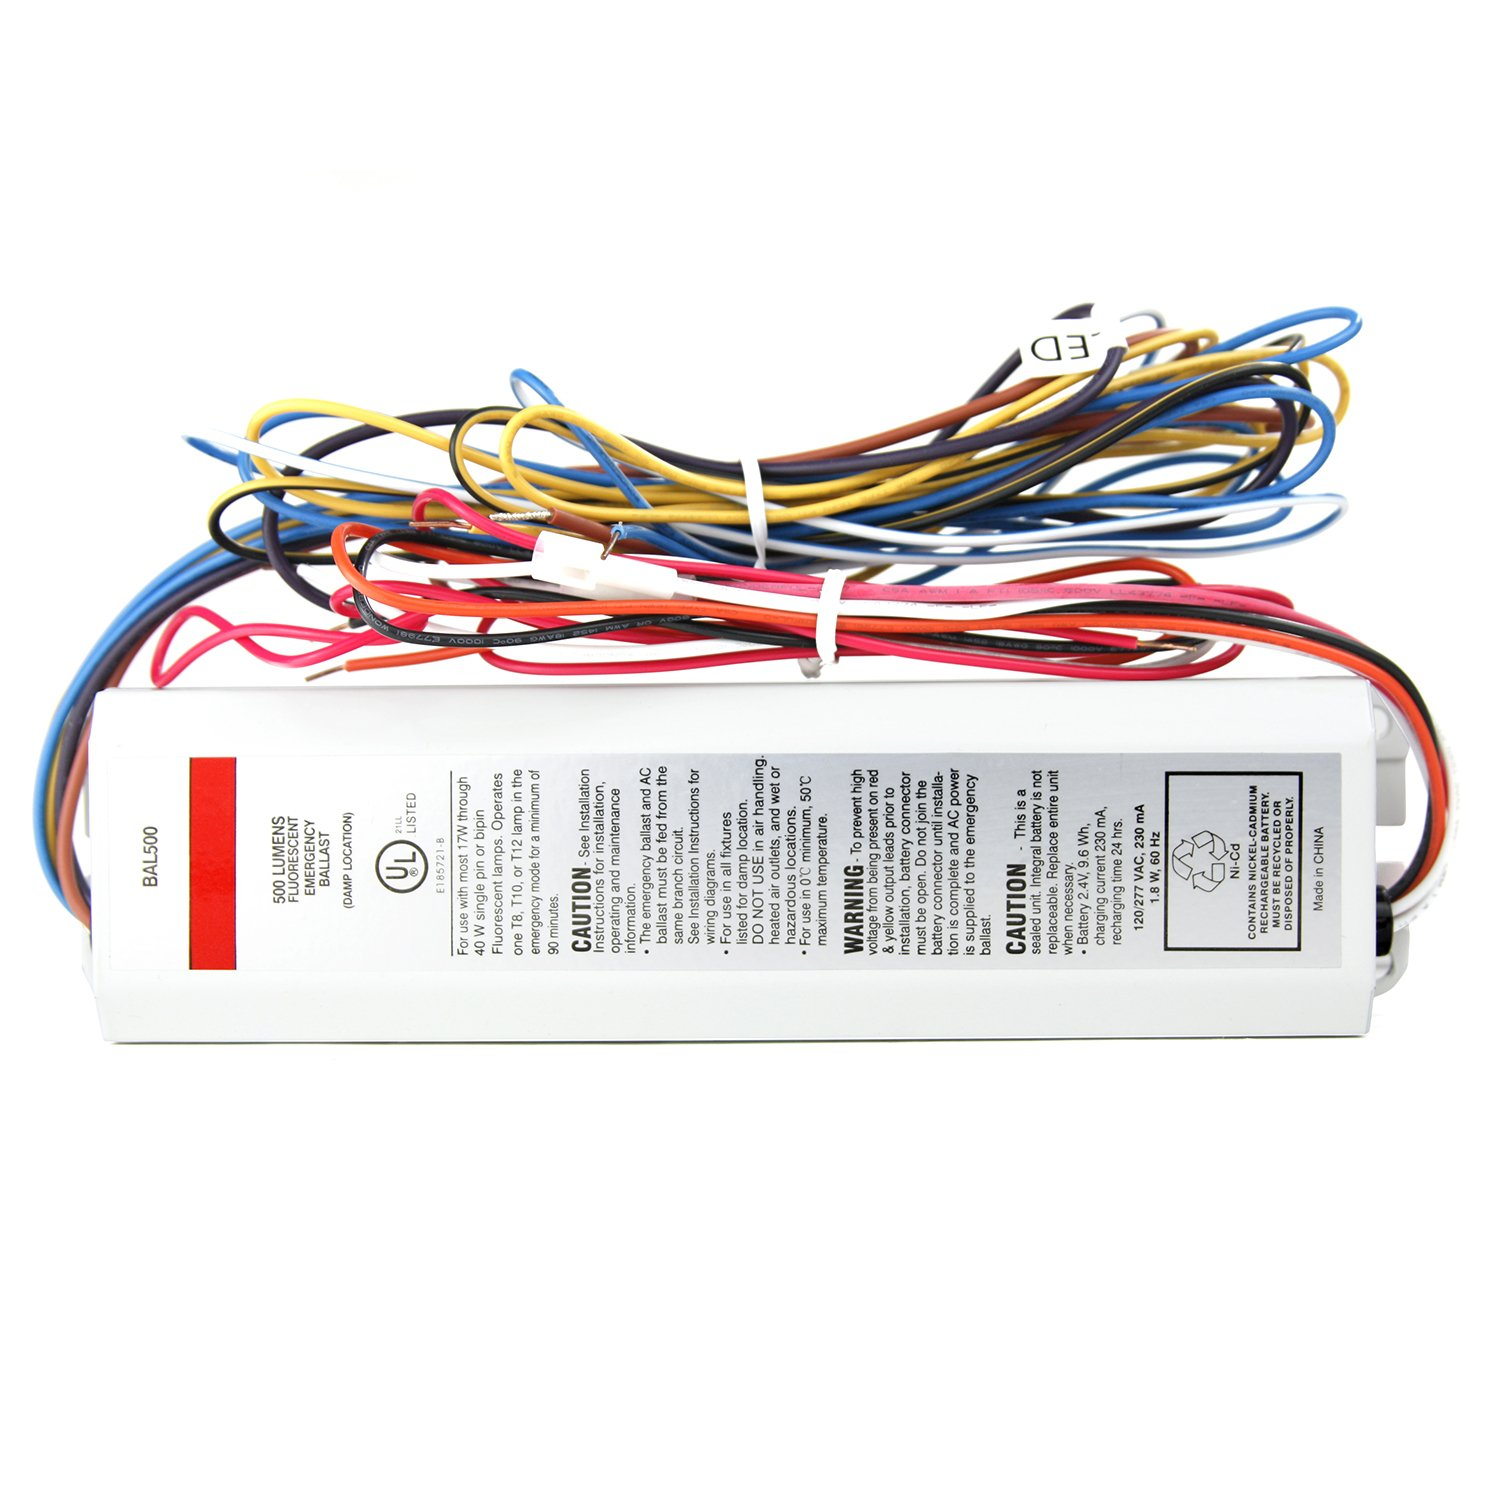 Sunlite 40500 Su Bal500 Linear Fluorescent Ballast And Backup Rechargeable Battery Wiring Diagram Multi Volt Cable Ties